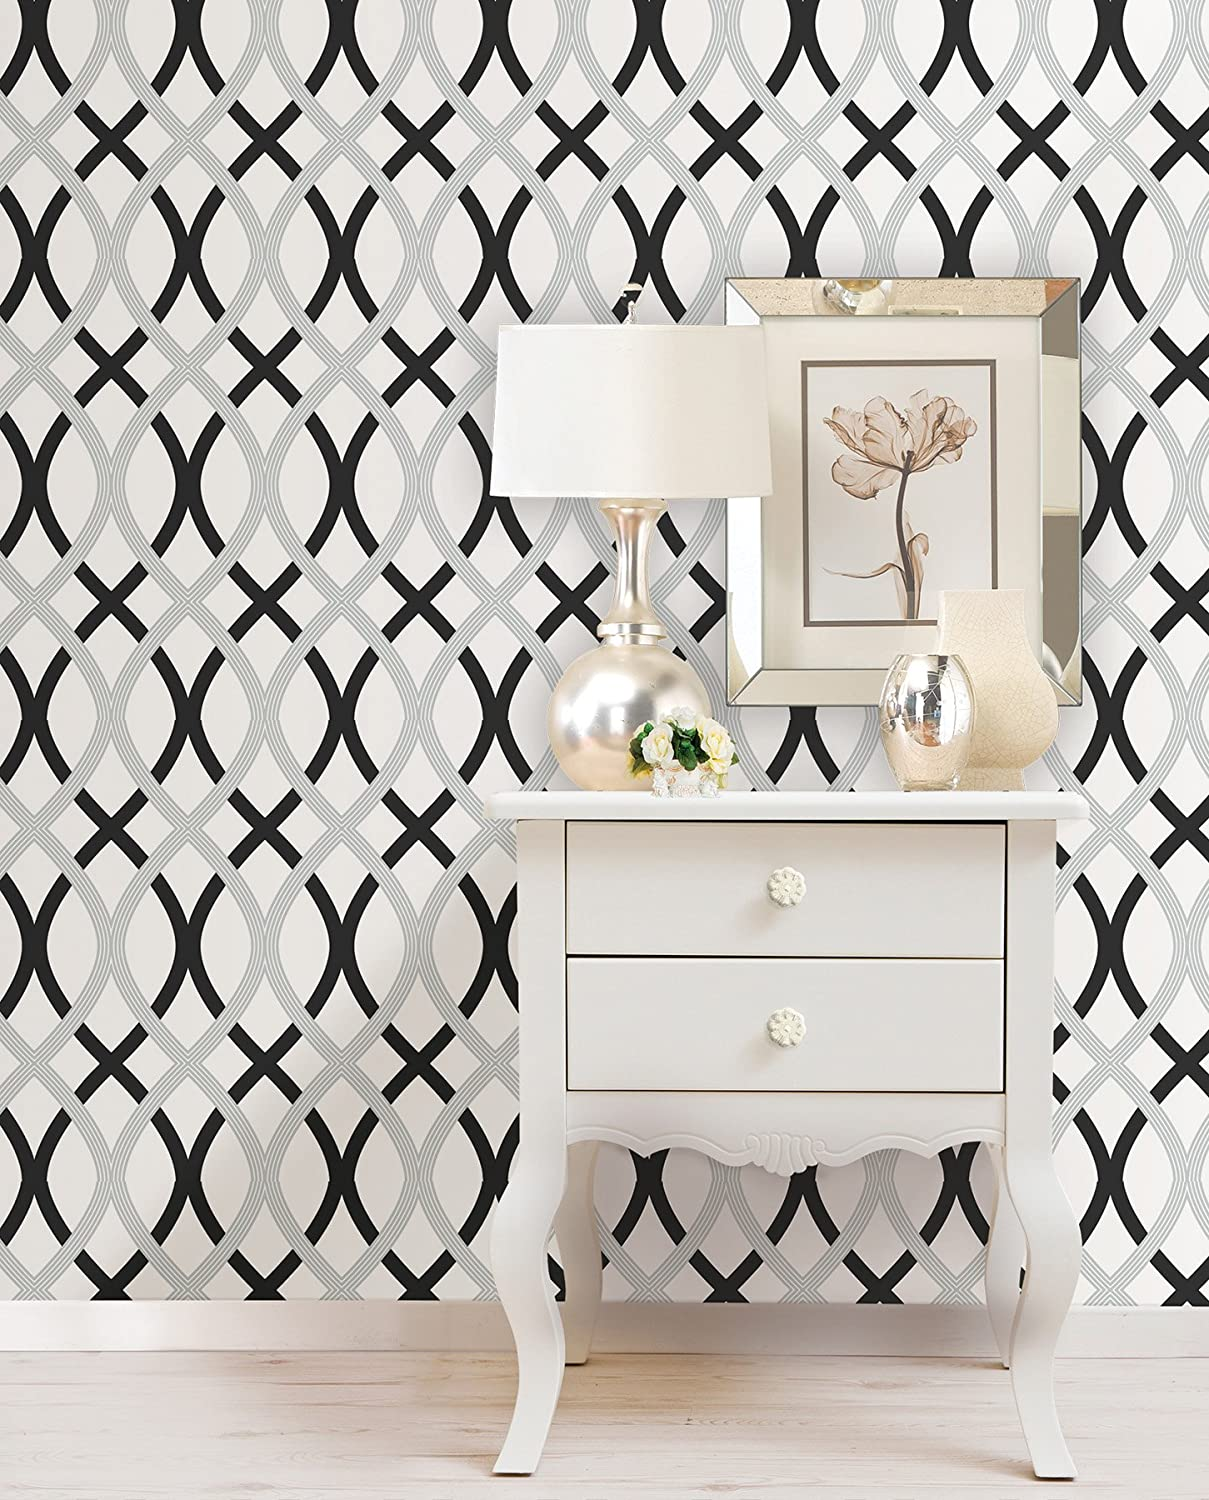 Wall Pops NU1658 Lattice Peel And Stick Wallpaper, Black/Silver      Amazon.com